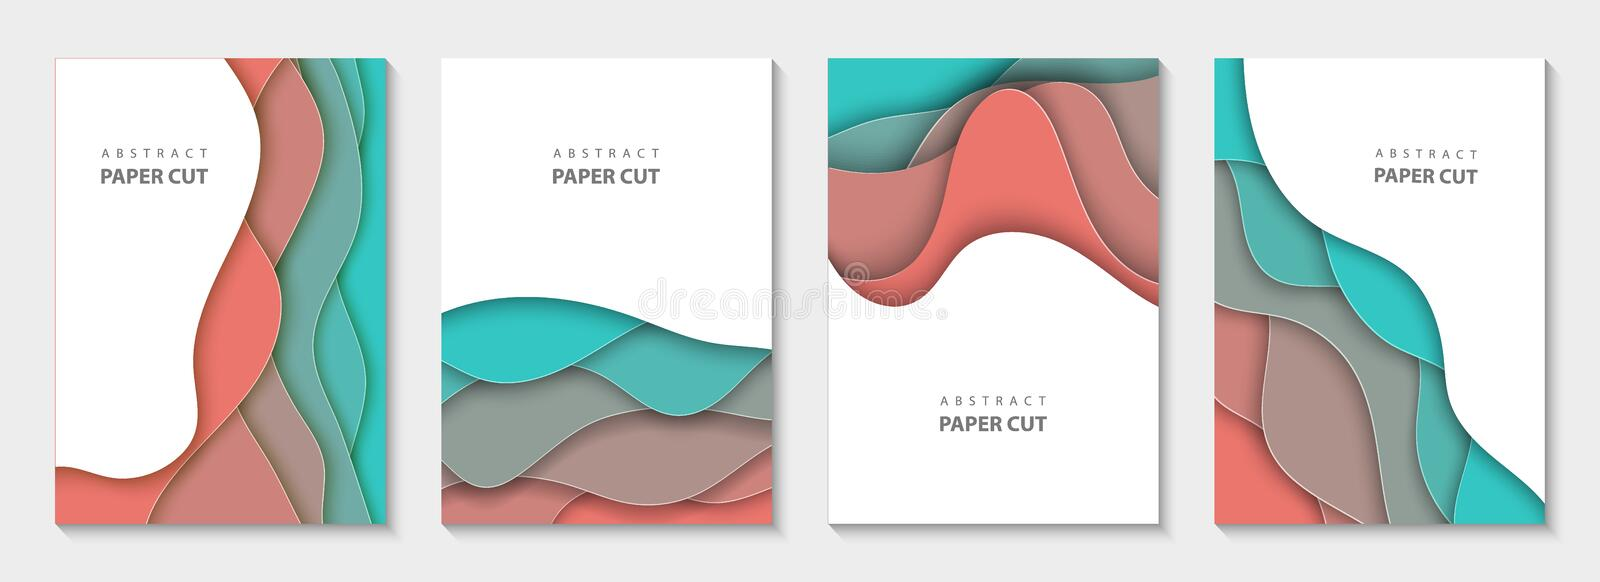 Vector vertical flyers with colorful paper cut waves shapes. 3D abstract paper style, design layout for business presentations royalty free stock photo